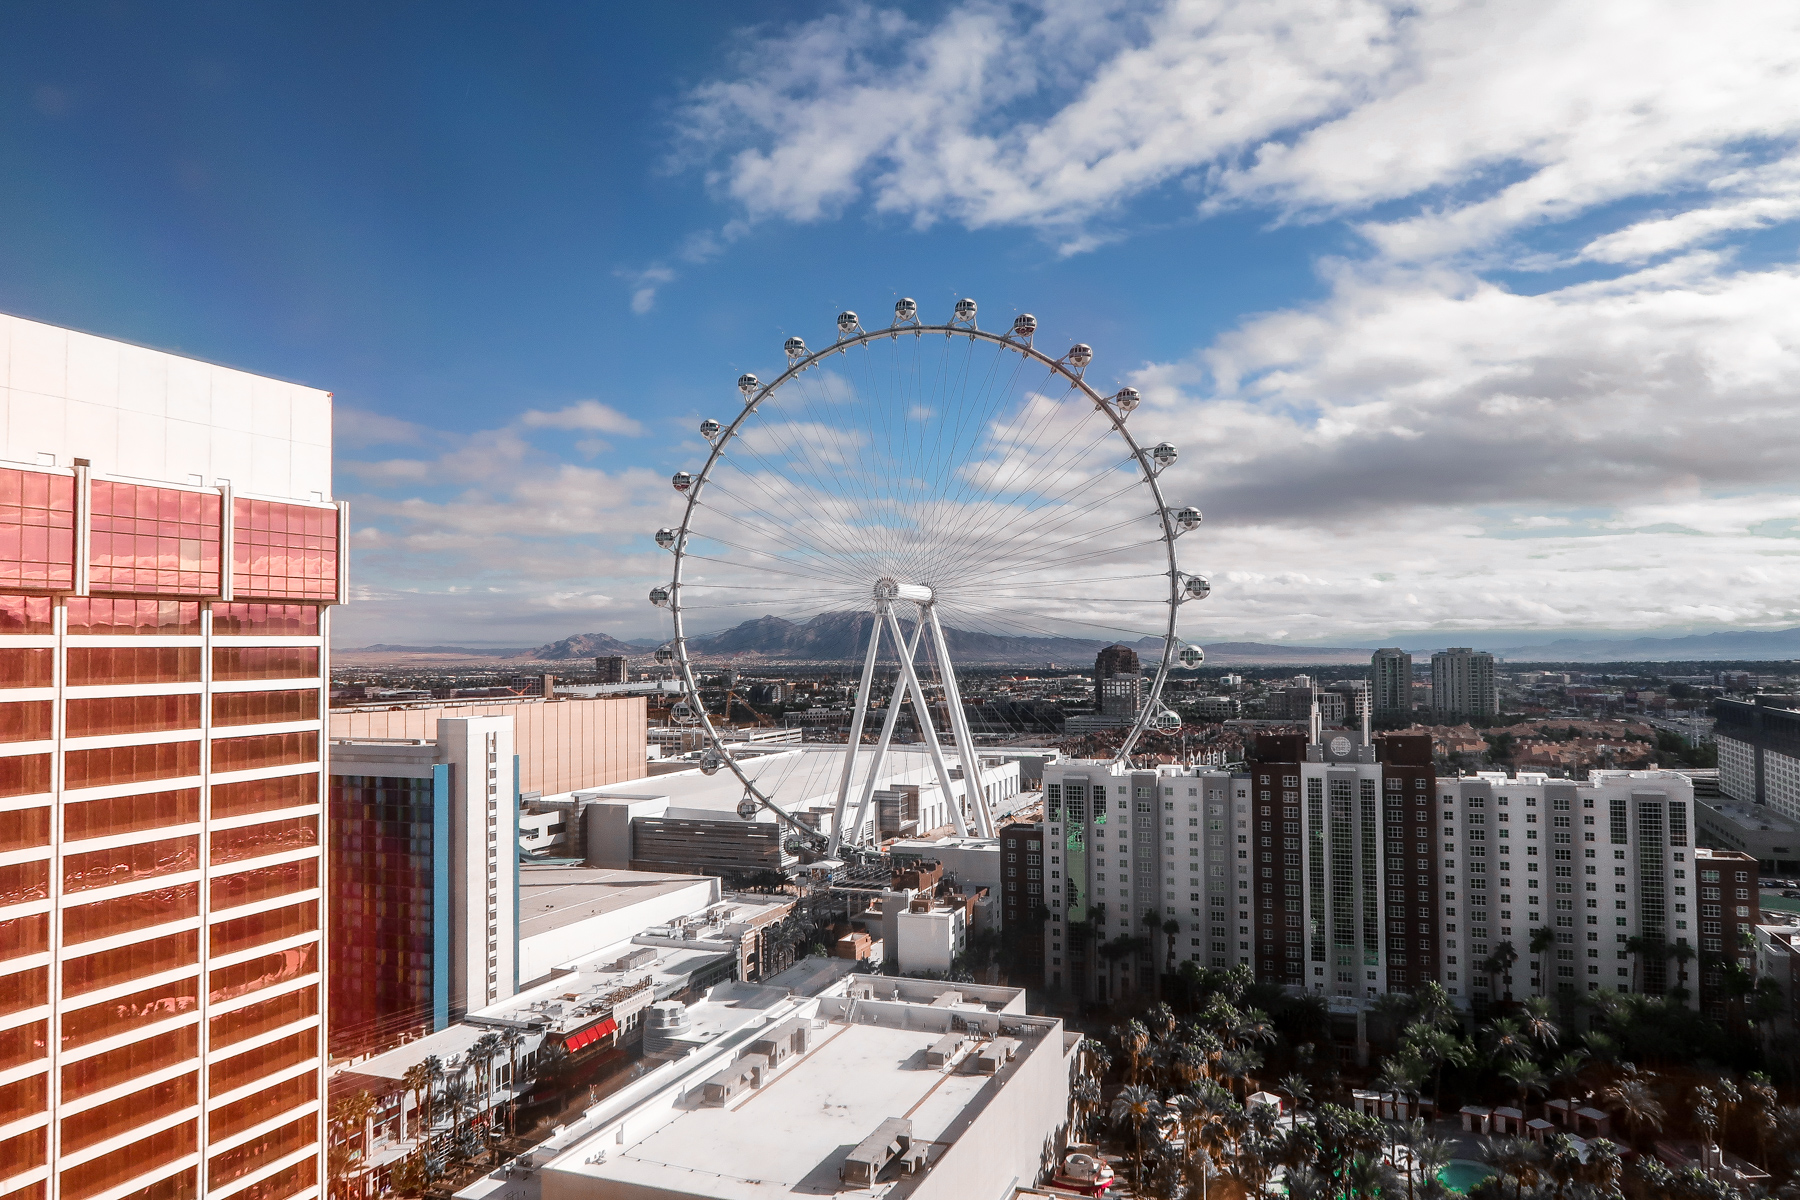 High Roller Linq | 7 Night Itinerary for Las Vegas | If you're looking to plan things to do in Vegas here's what we got up to on our 6th visit | Travel Tips | Elle Blonde Luxury Lifestyle Destination Blog